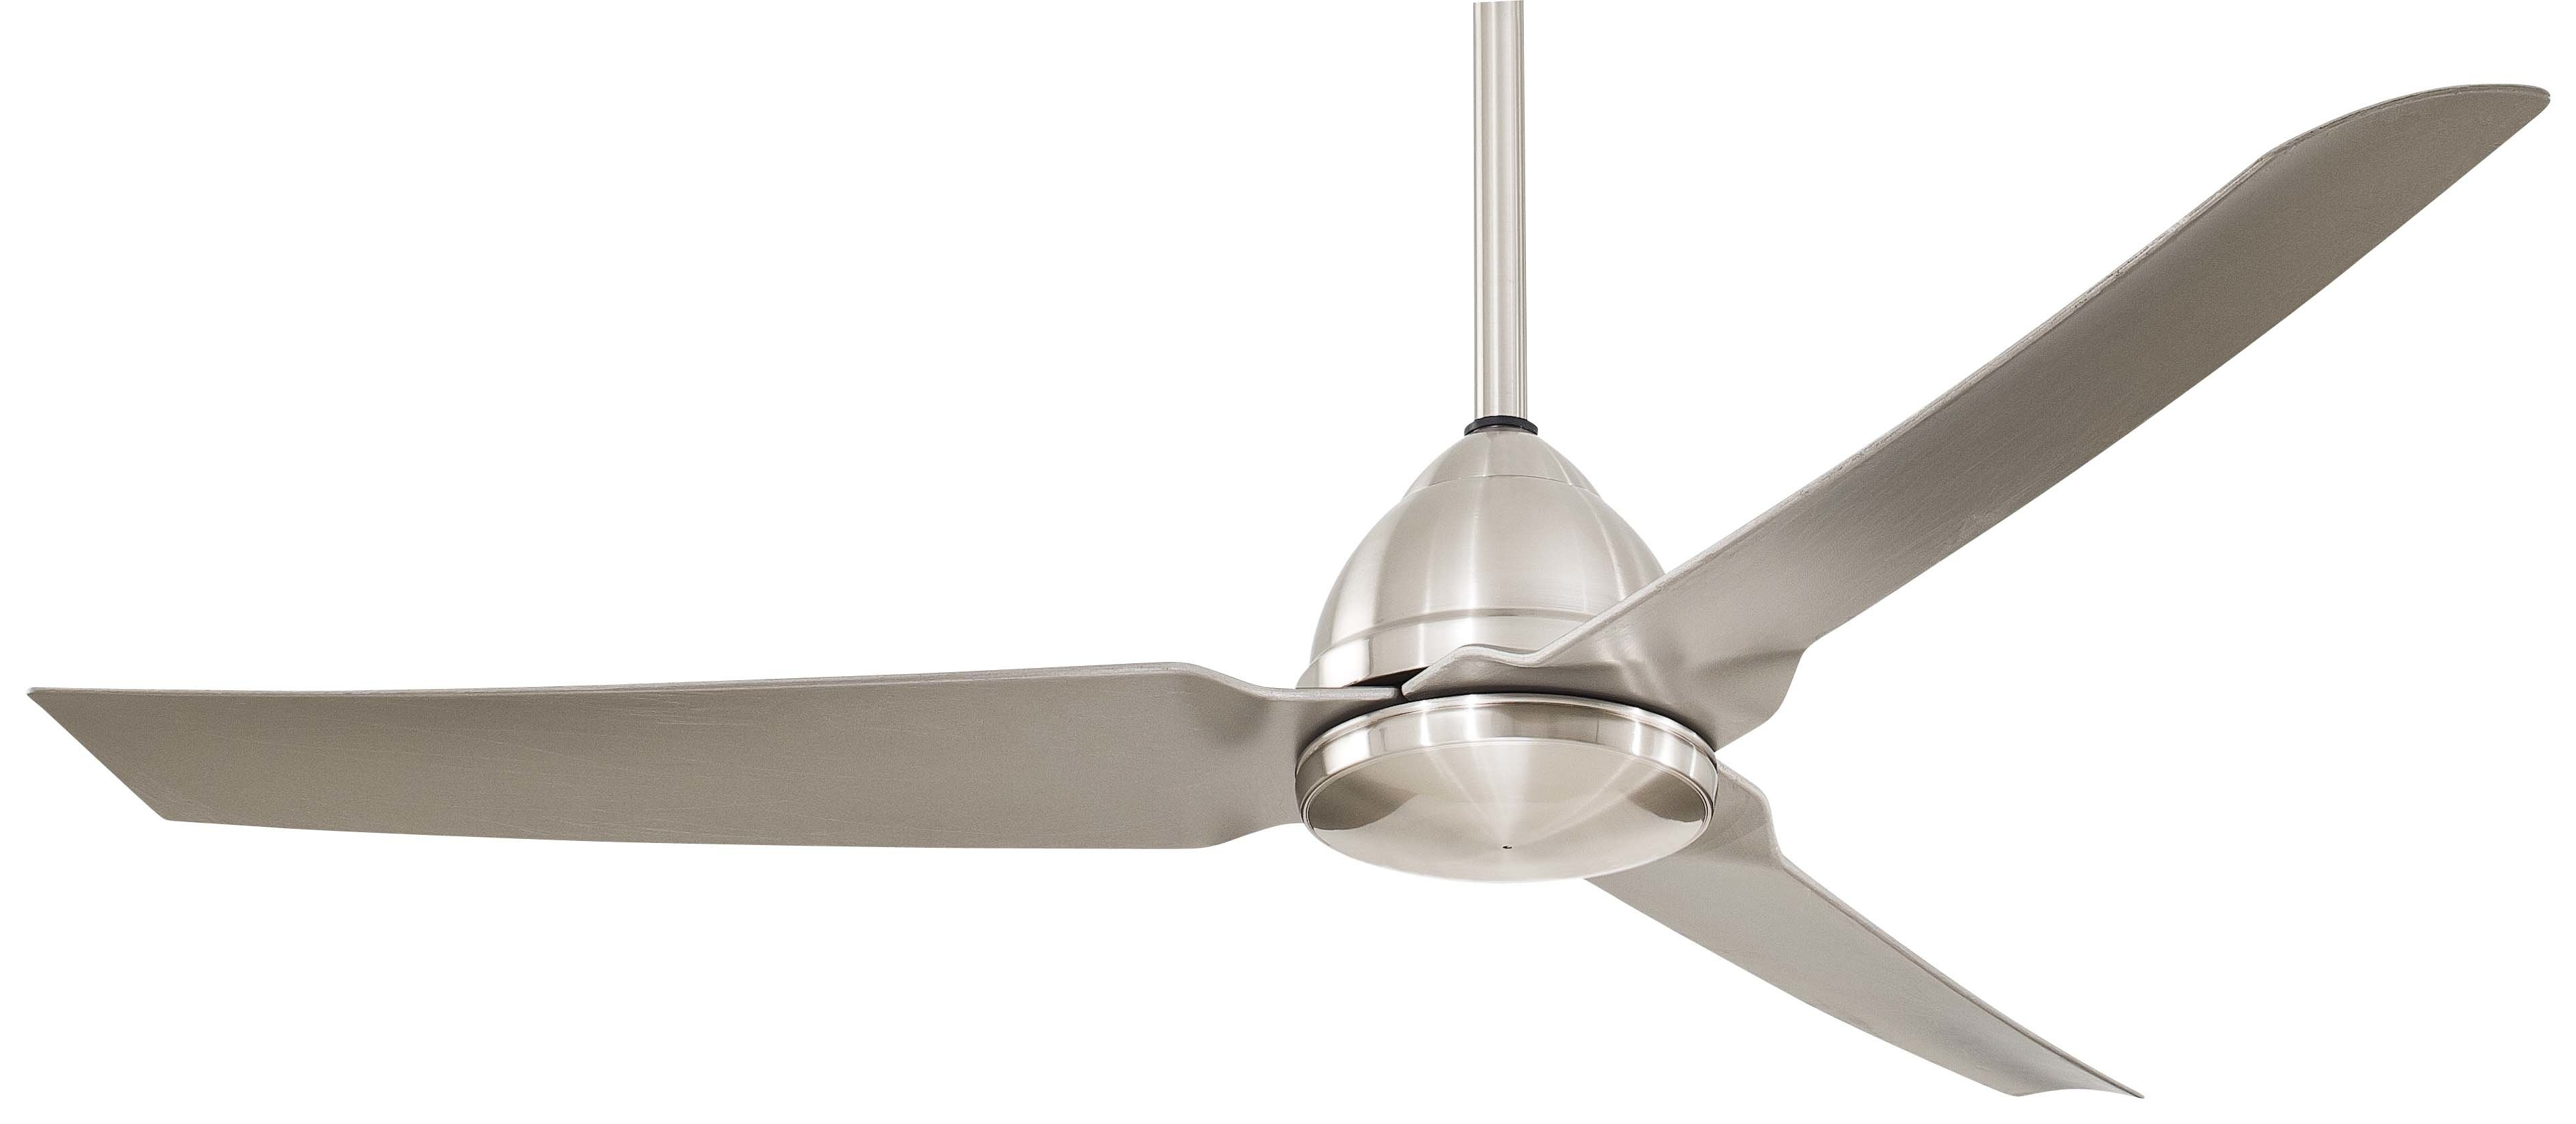 Wayfair For Famous Heavy Duty Outdoor Ceiling Fans (View 19 of 20)